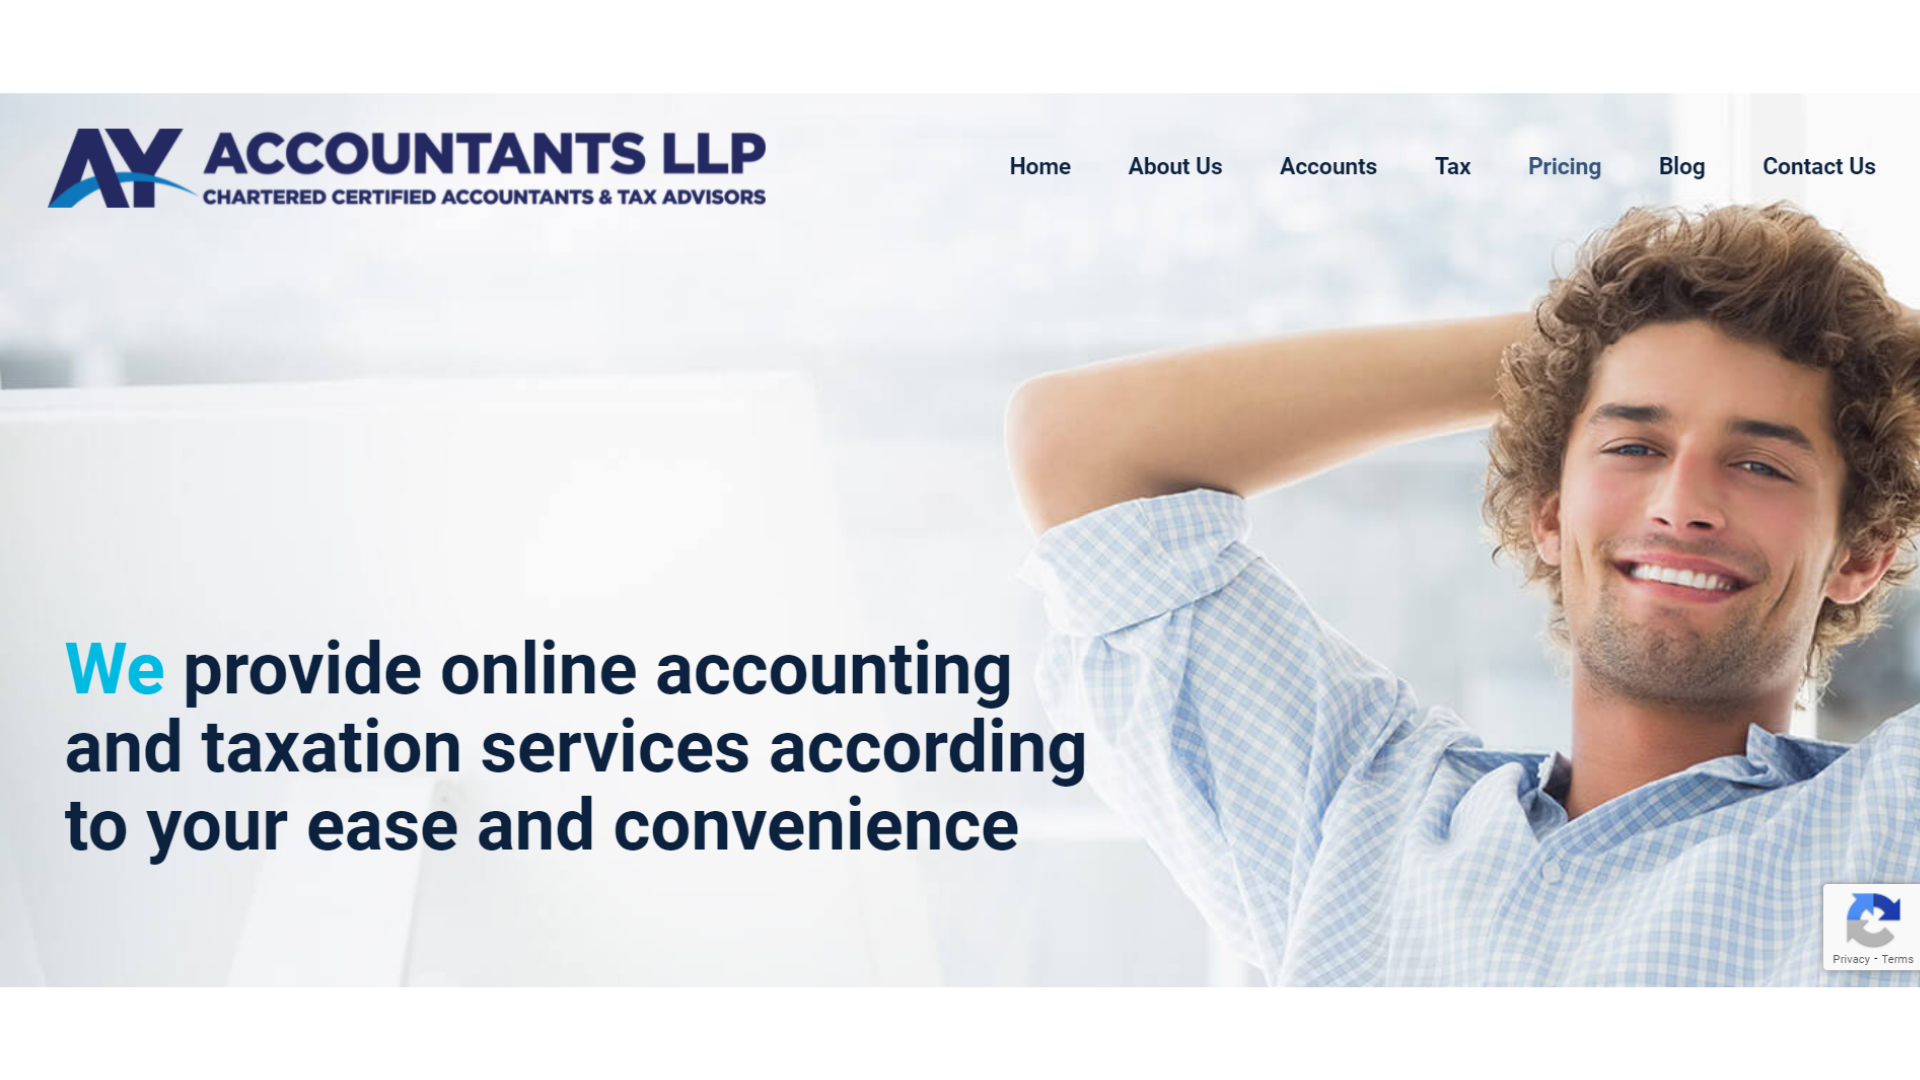 Small Business Accountants in Manchester   UK accounting experts - ay accountants